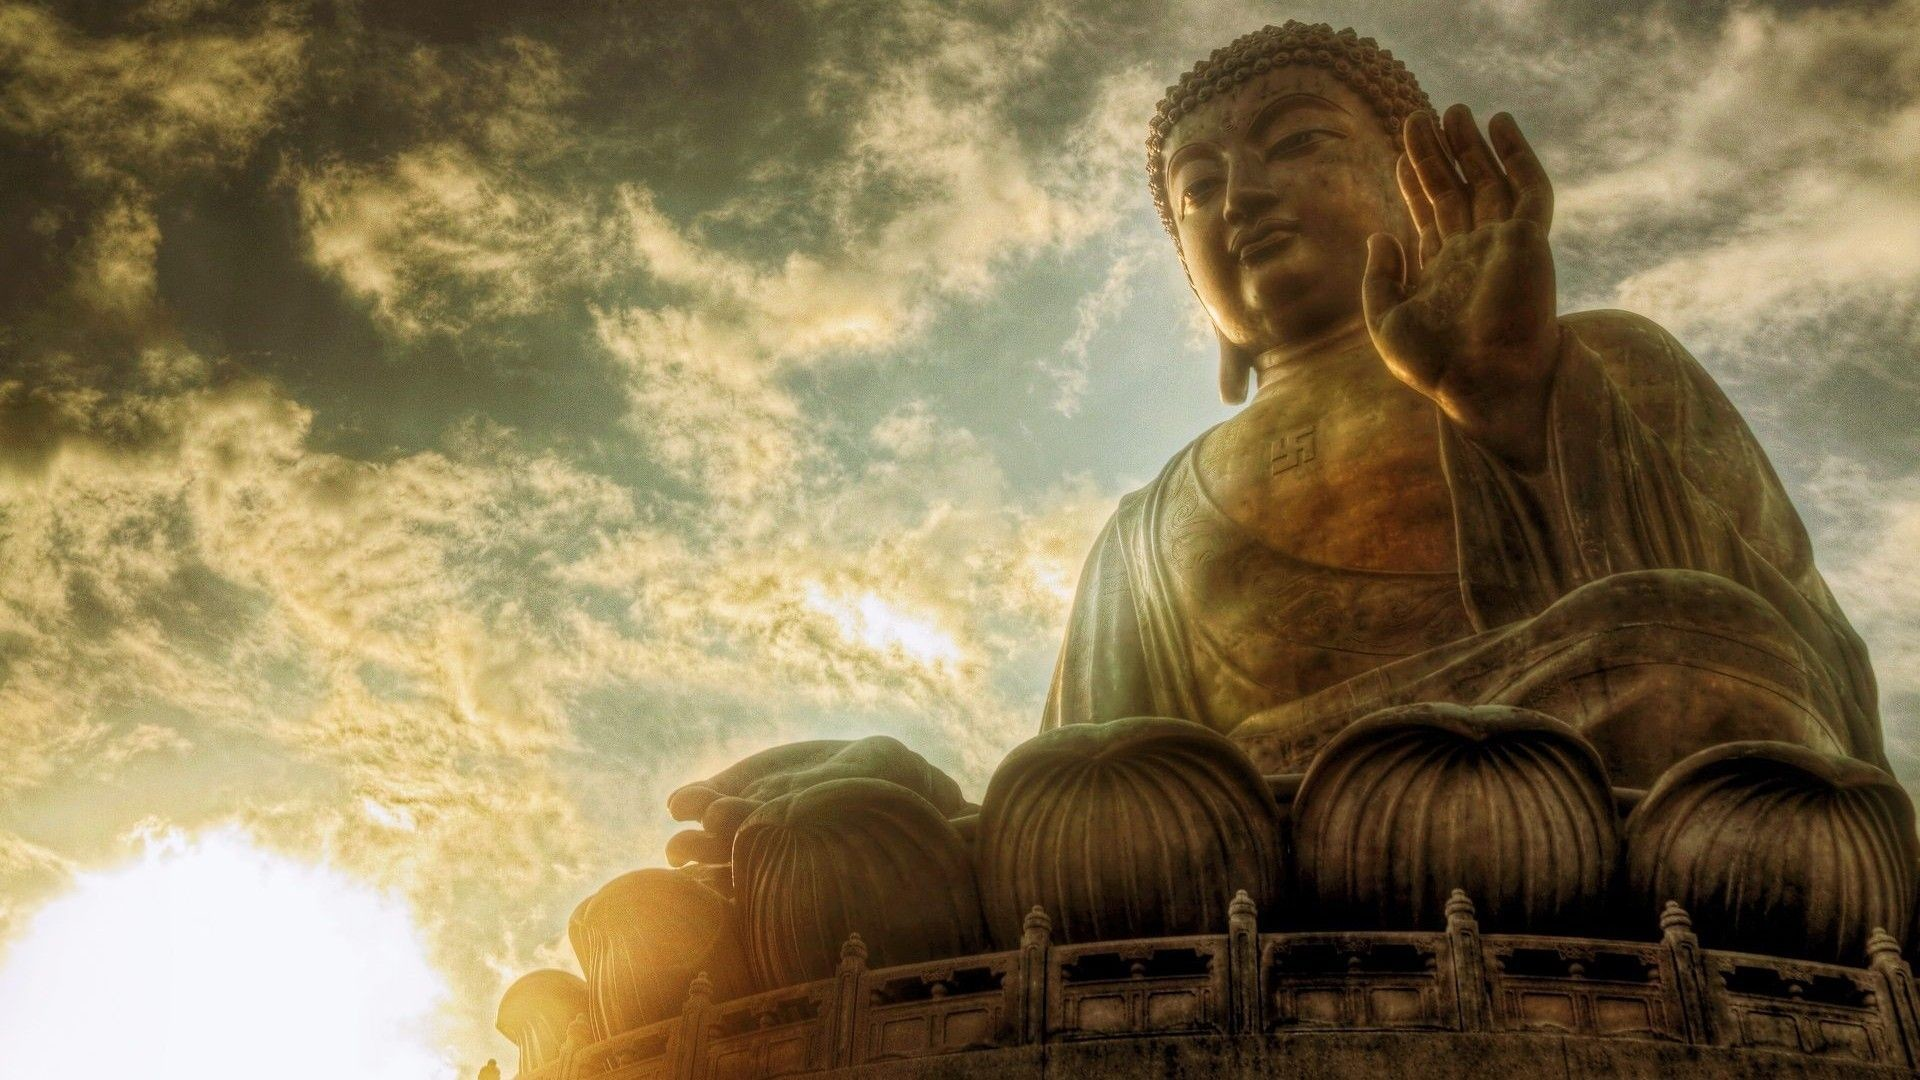 Res: 1920x1080, Wallpapers and Pictures BG Collection: Buddha, by Otis Beckert – download  free